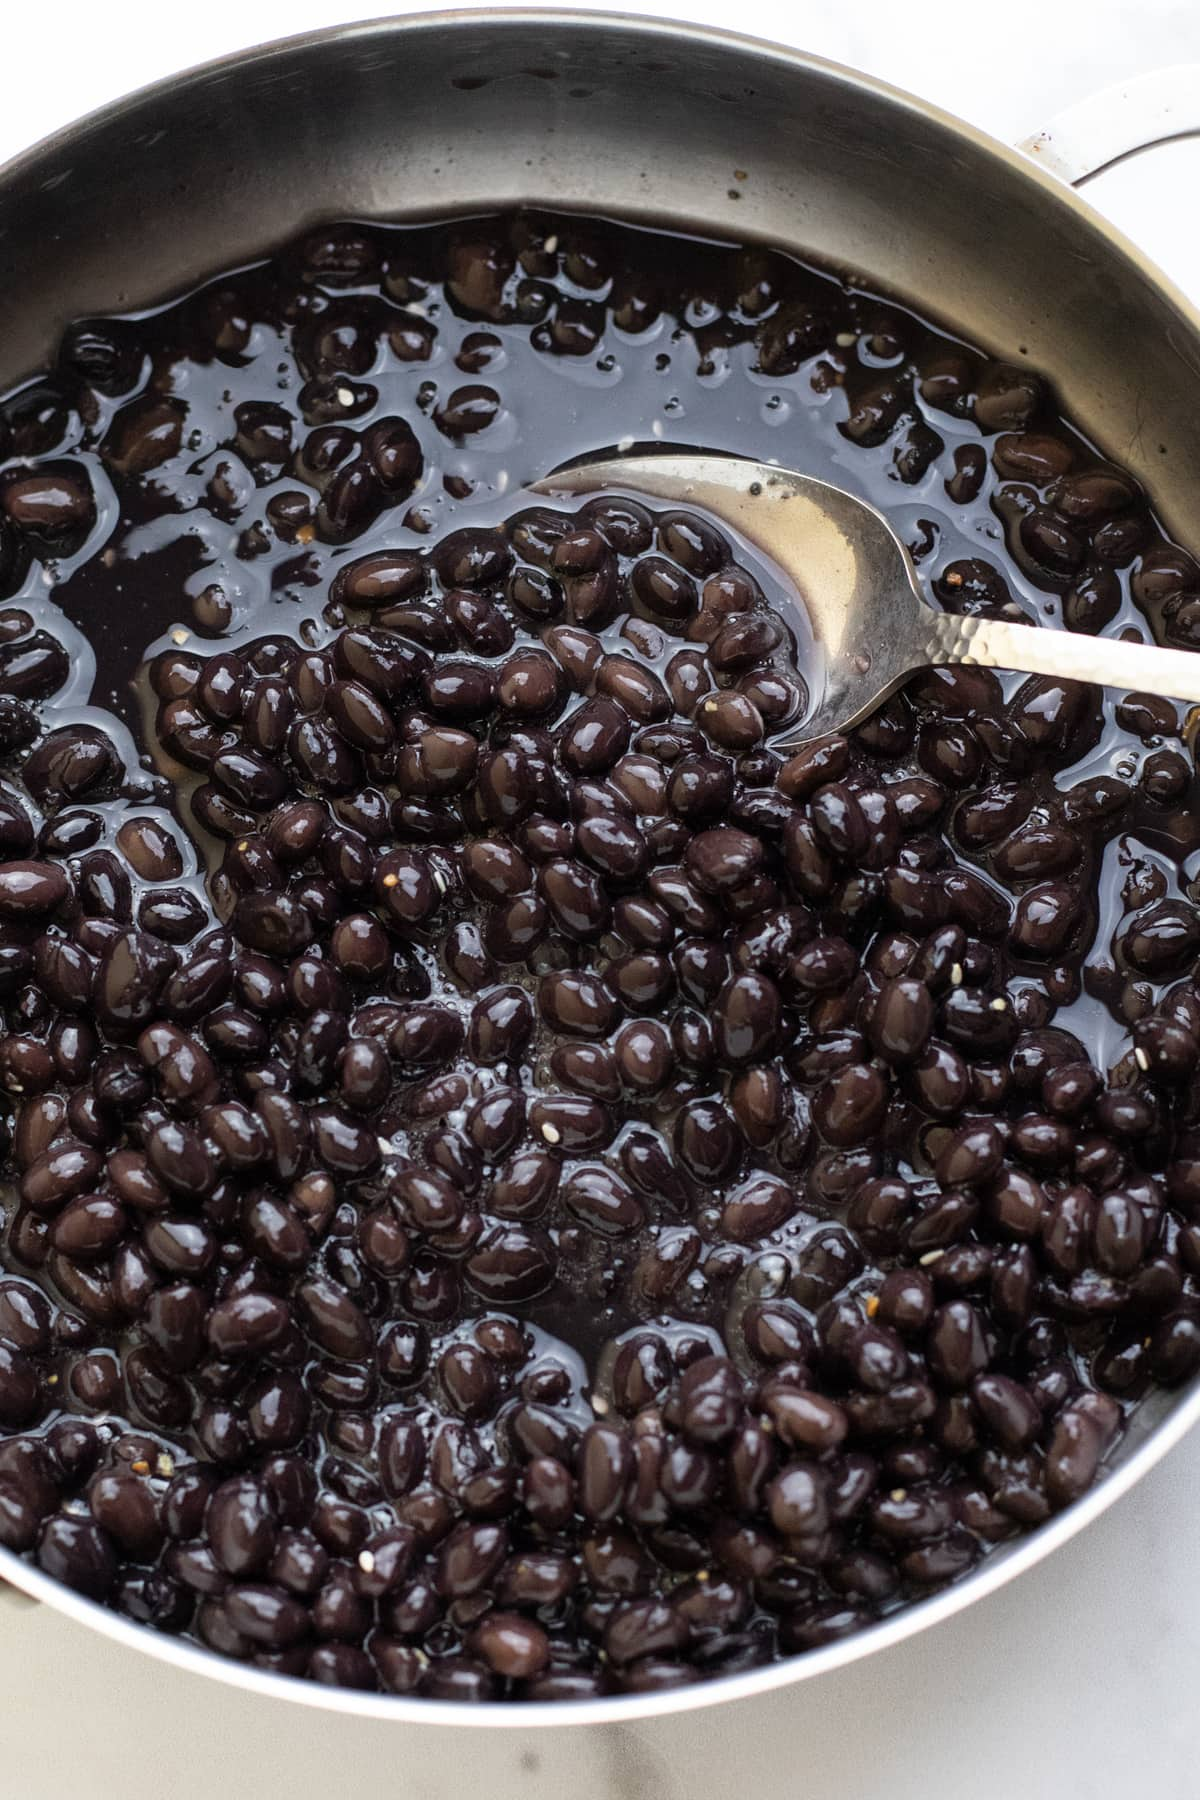 Spoon stirring black beans in a silver pan.